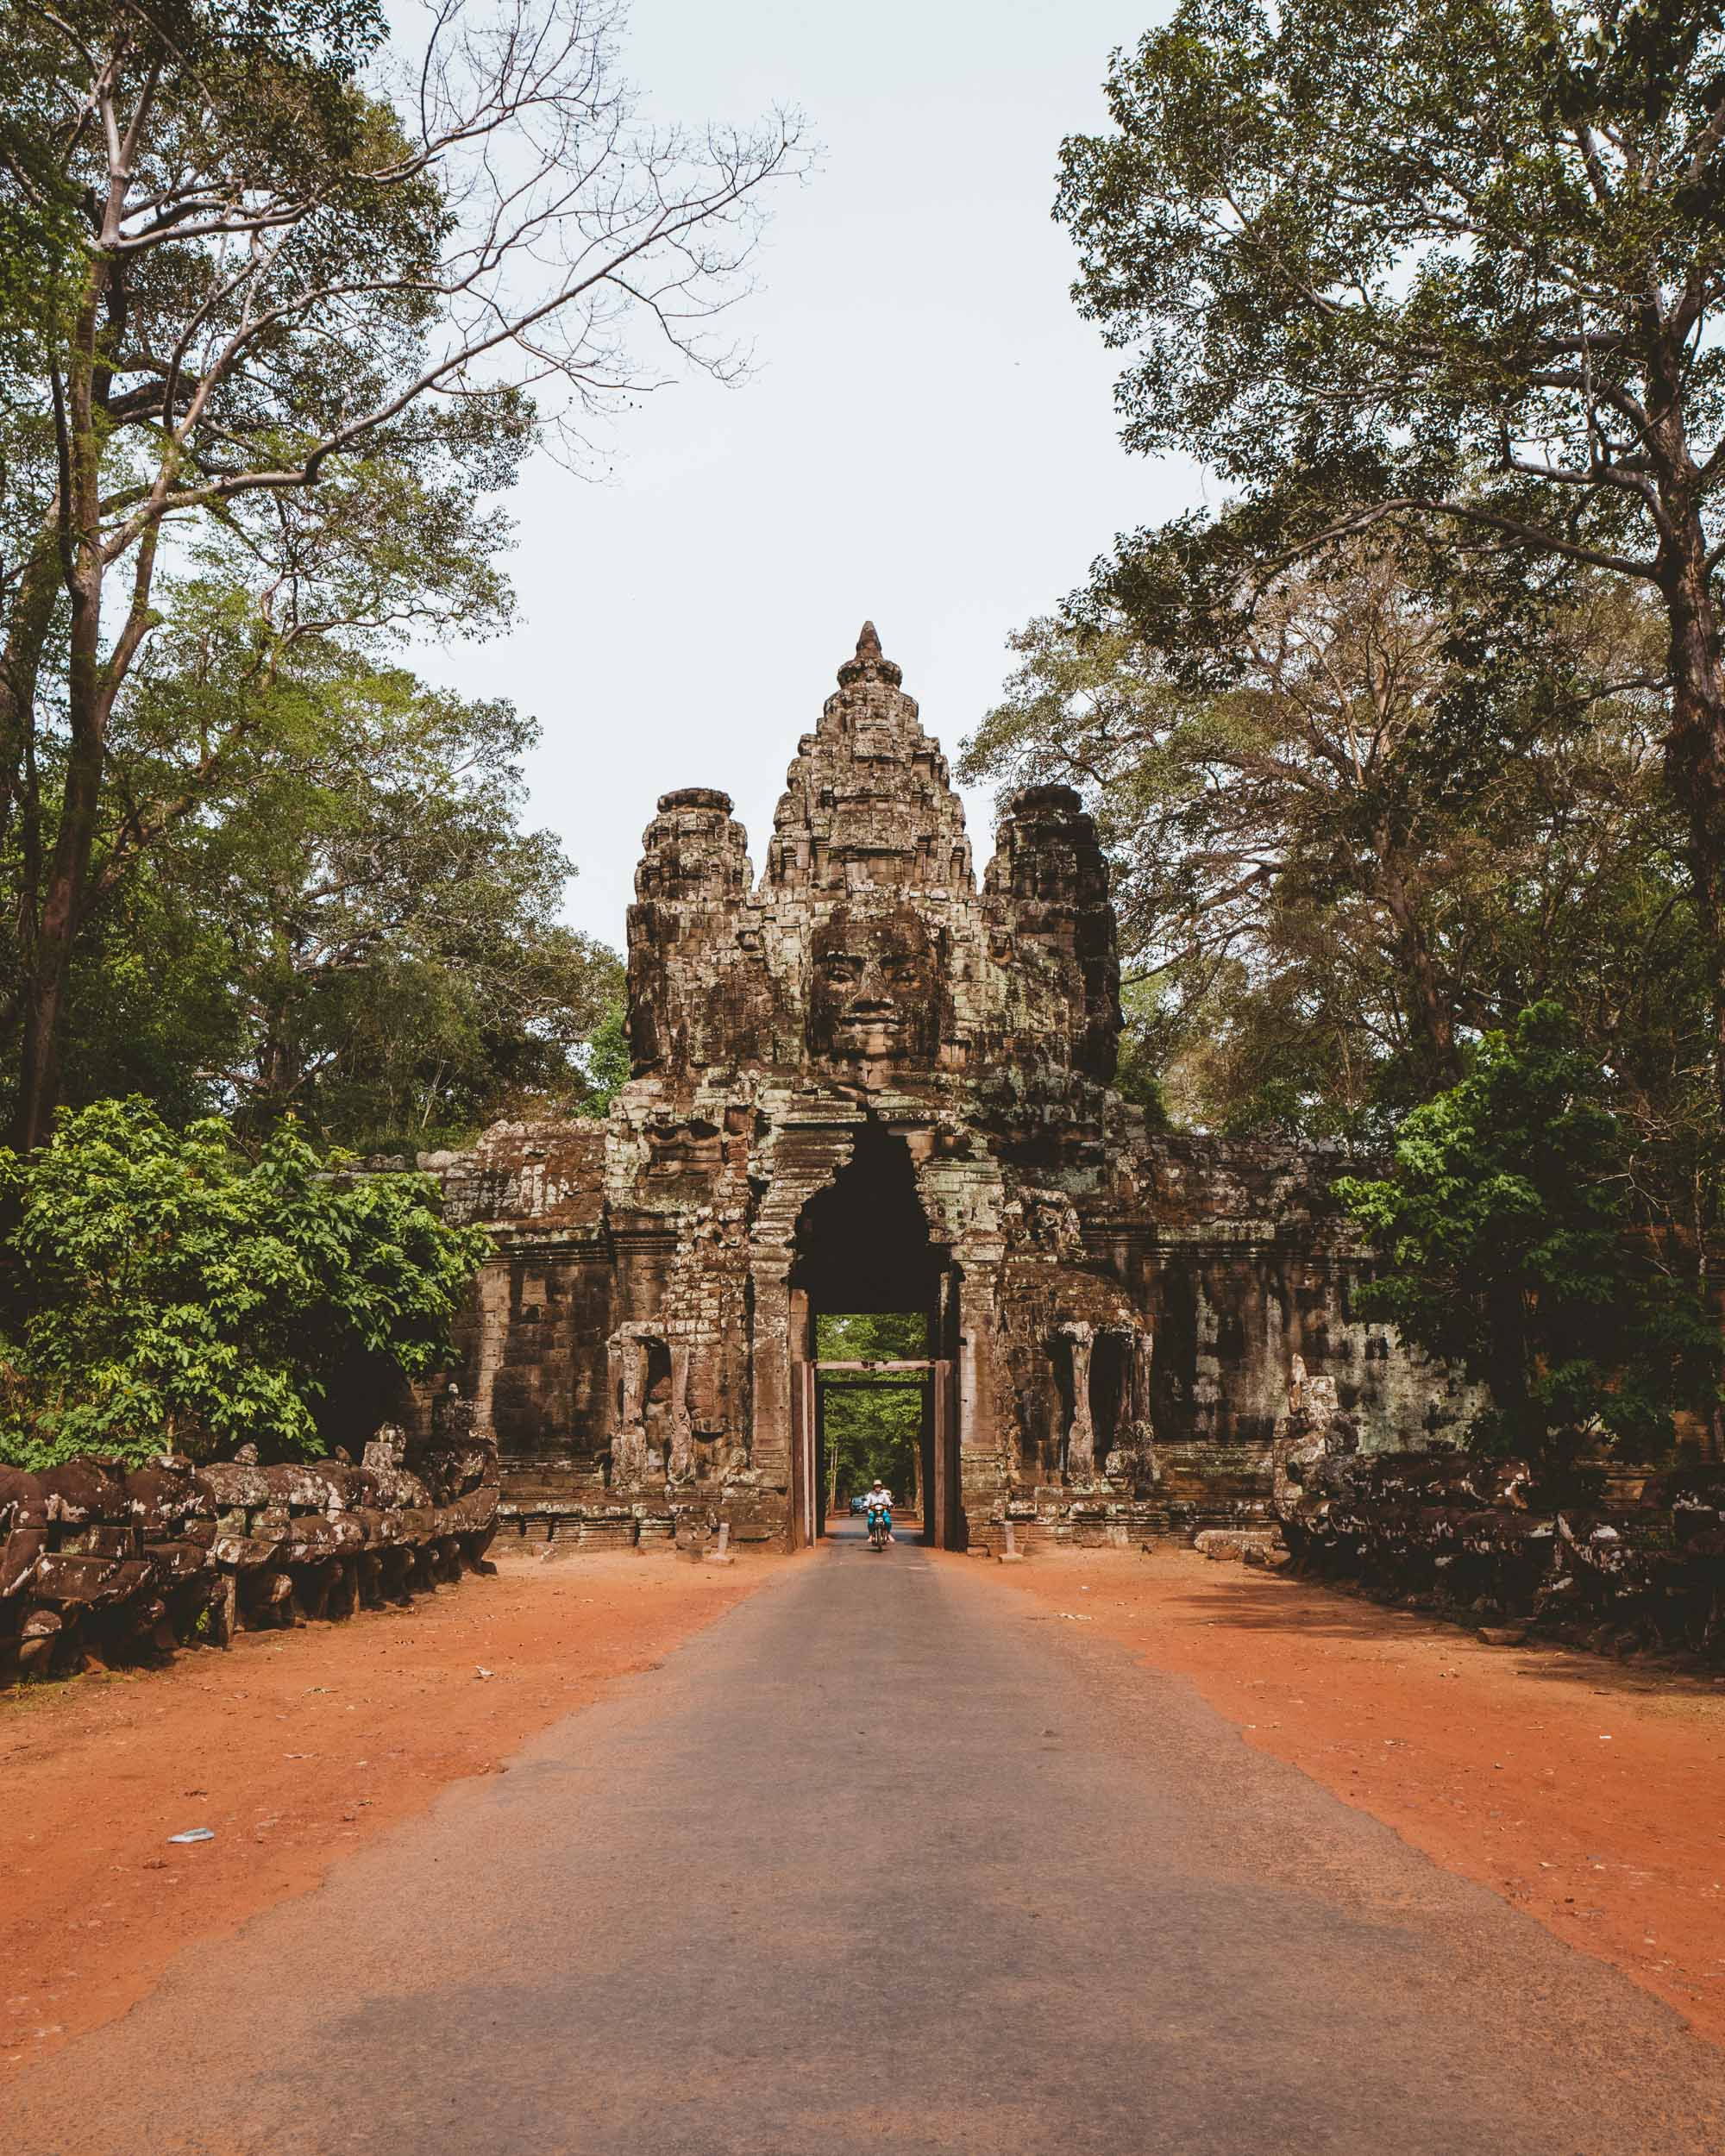 Bayon temple entrance in Angkor Wat Cambodia